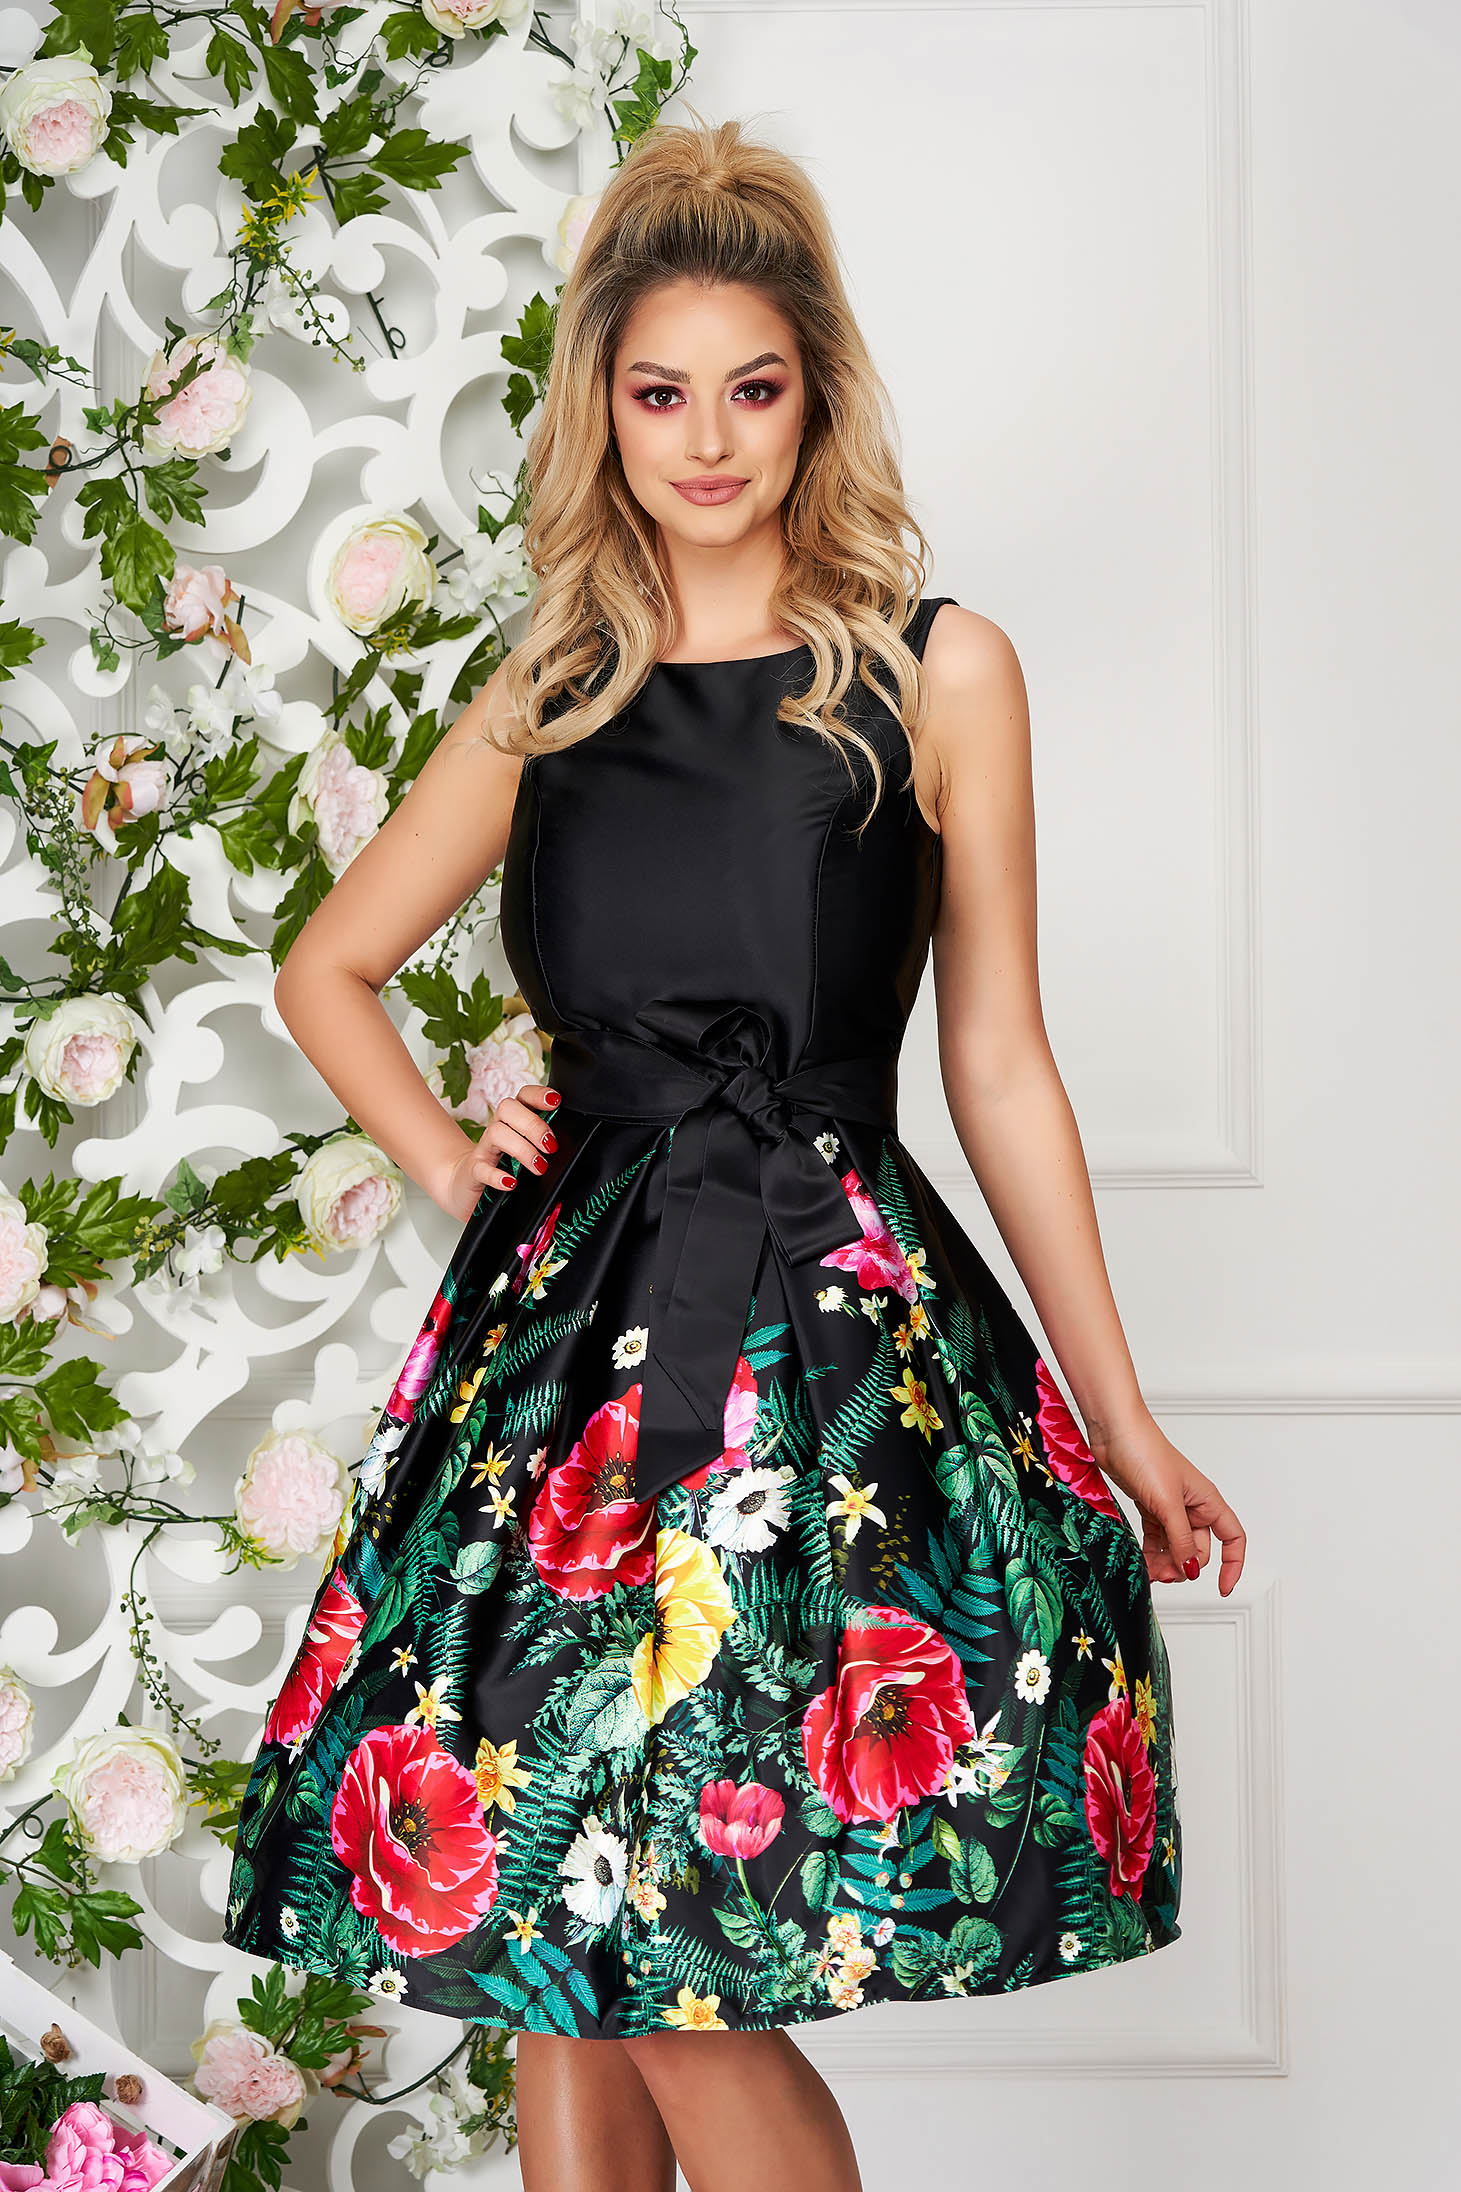 Black dress occasional midi from satin sleeveless with floral print